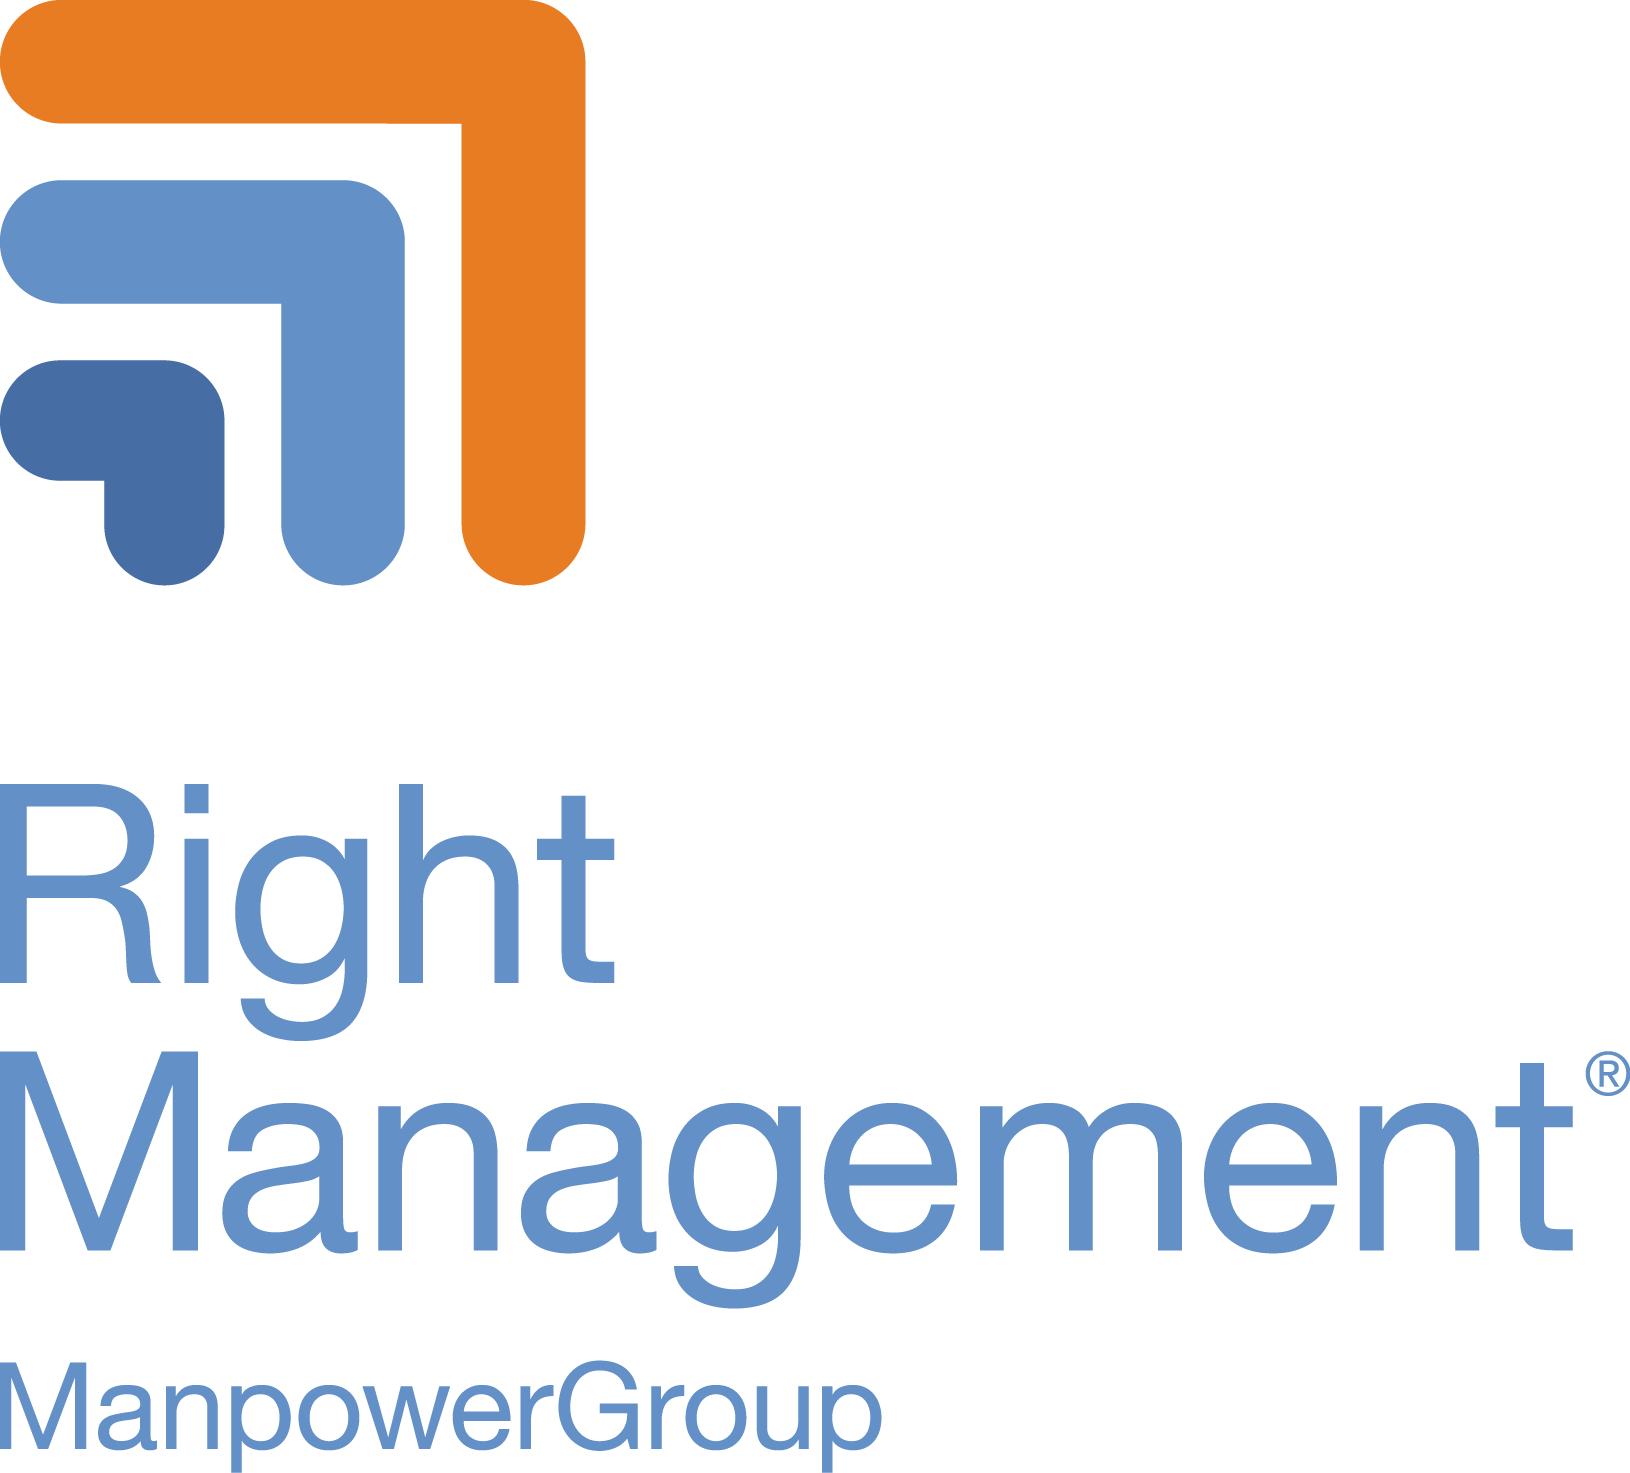 RightManagement